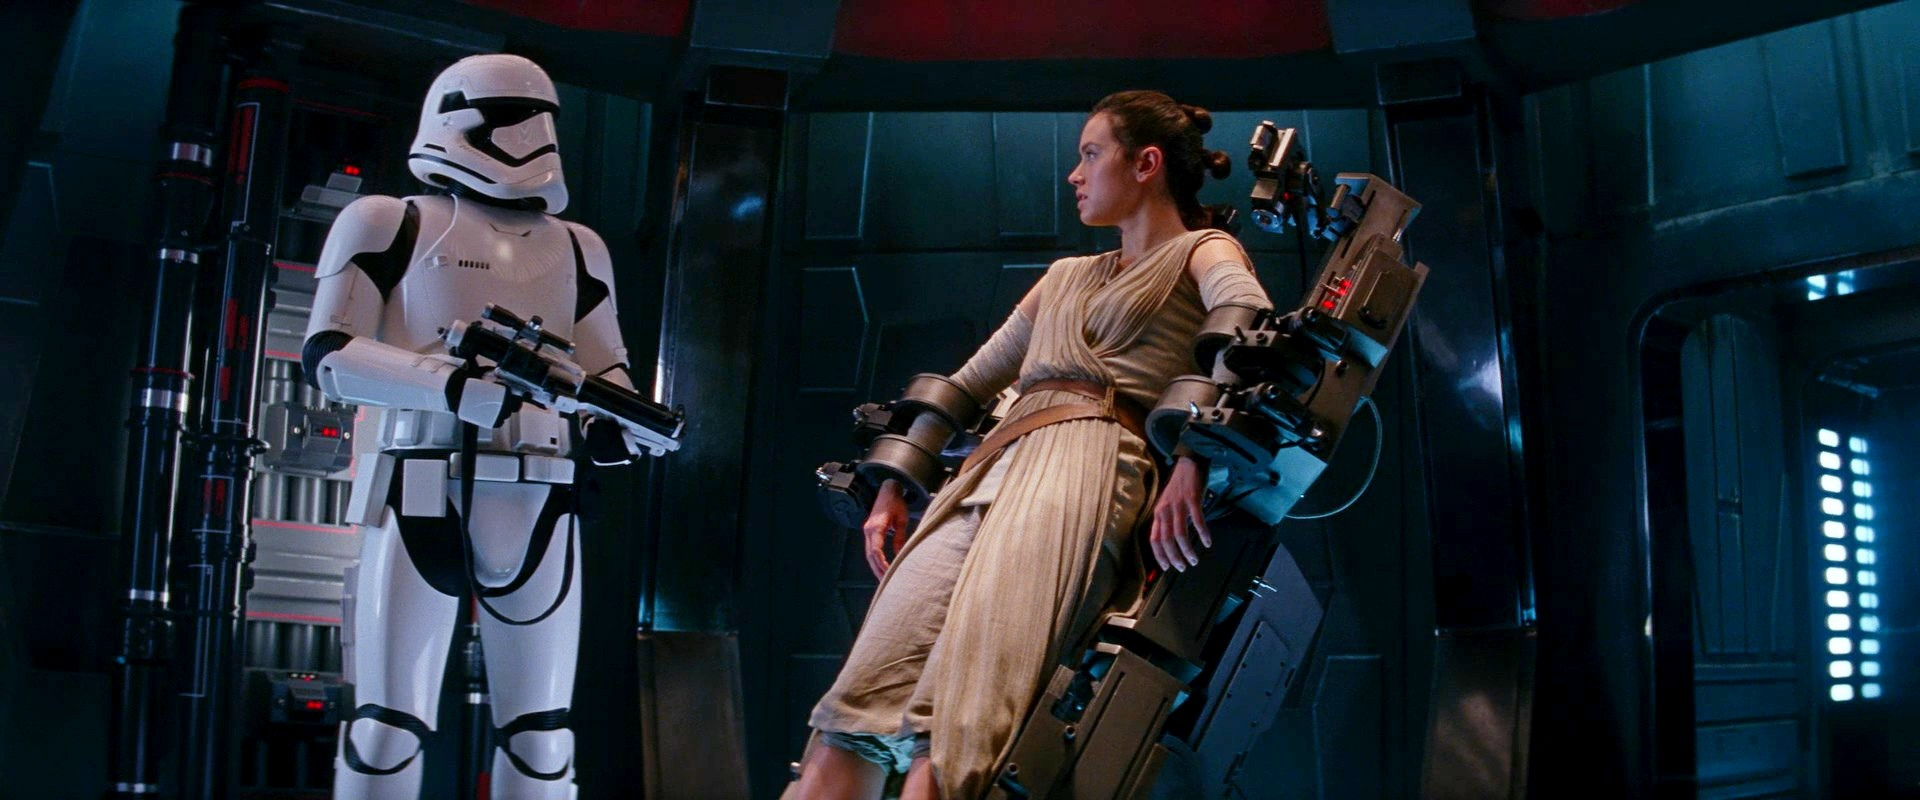 an analysis of archetypes in the star wars the force awakens a movie by jj abrams Jj abrams, director of the recently released movie star wars: the force awakens, revealed a little secret during an interview that secret has something to do with daisy ridley's character, obi-wan kenobi, and a flashback scene for those who haven't watched the film yet, the following paragraphs.